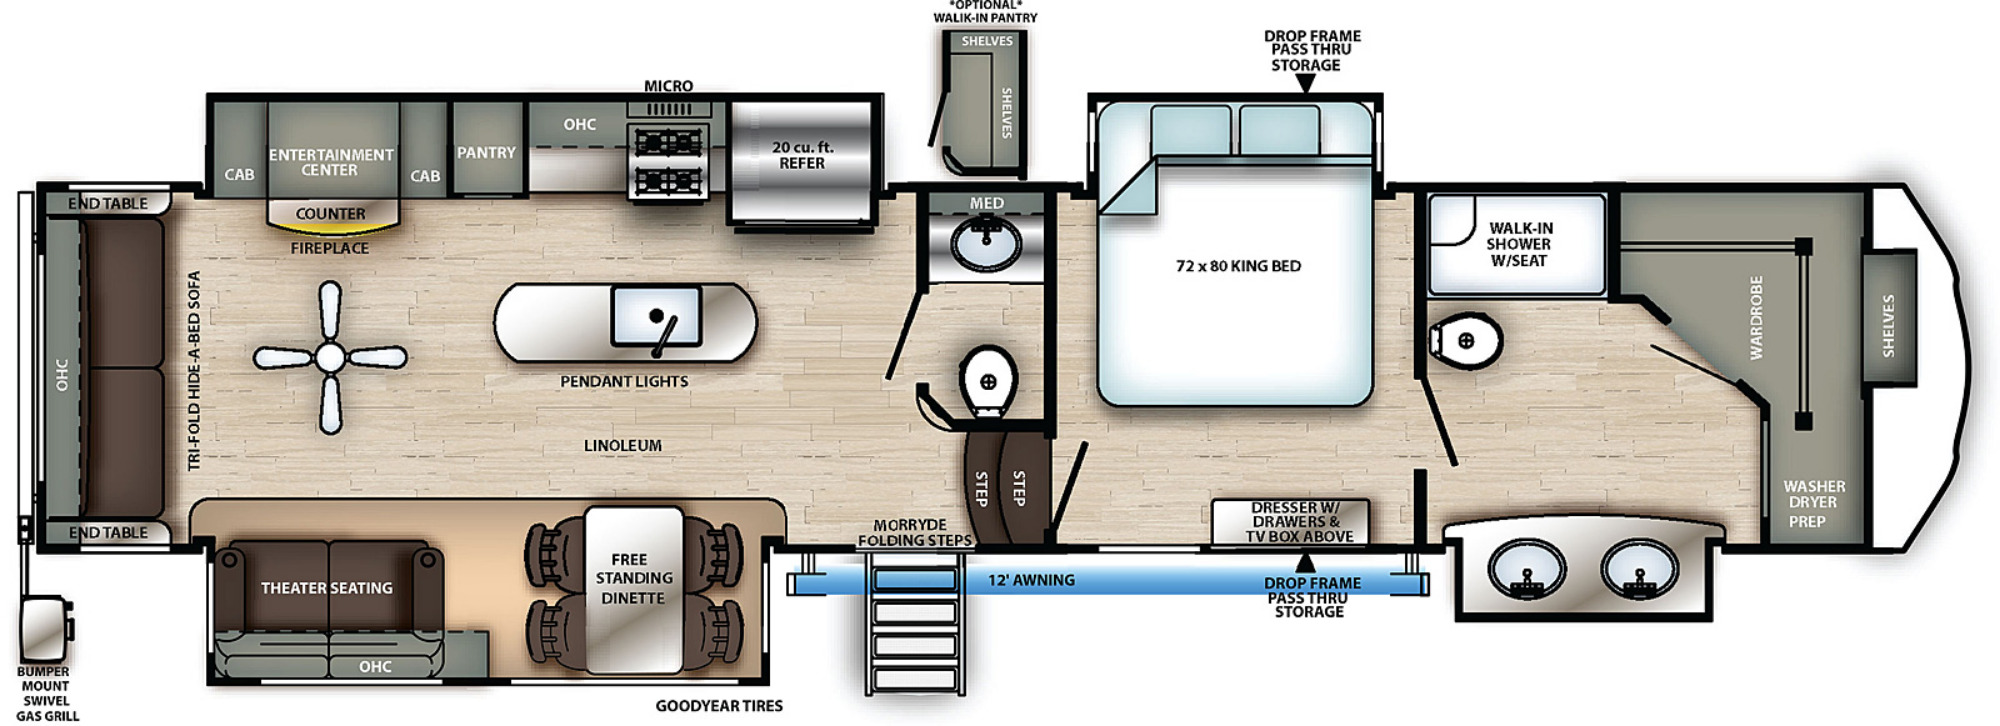 View Floor Plan for 2021 FOREST RIVER SIERRA 368FBDS